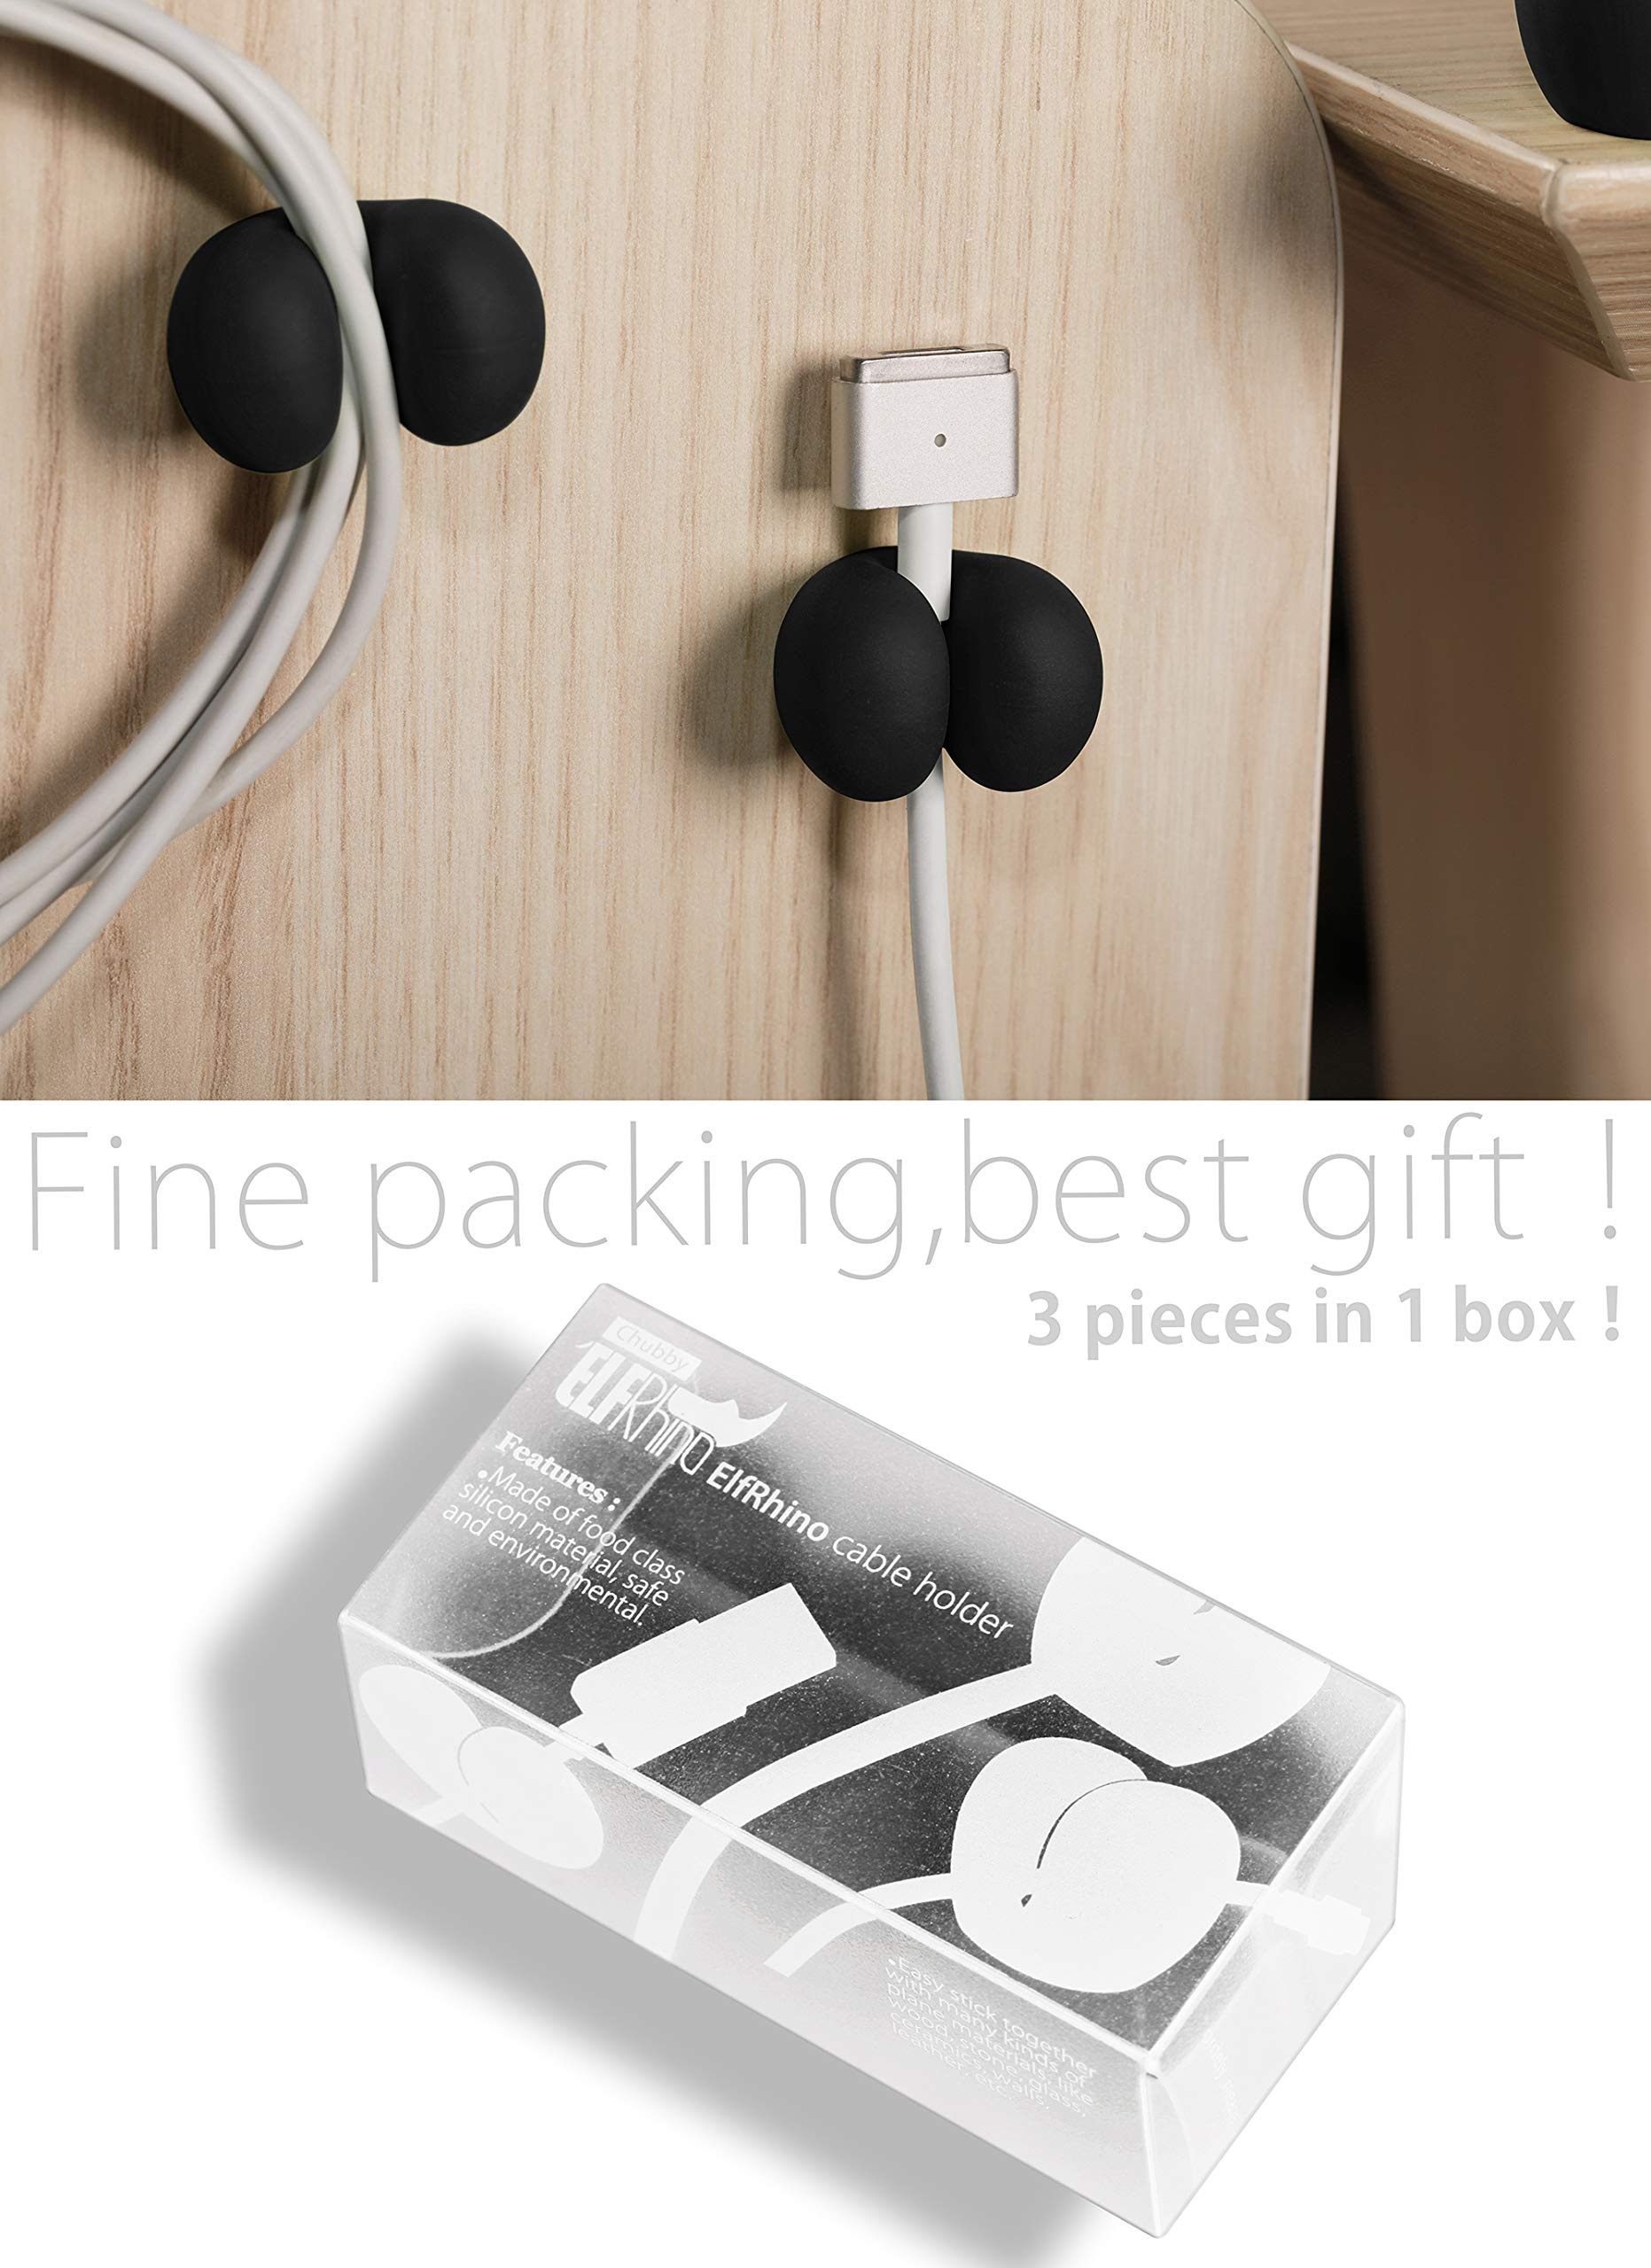 ELFRhino Cable Clips Cord Management with Holder System Desktop Cable Organizer Computer Electrical Charging or Mouse Cord Holder for Home Office Desk Accessories Set of 3 by ELFRhino (Image #7)